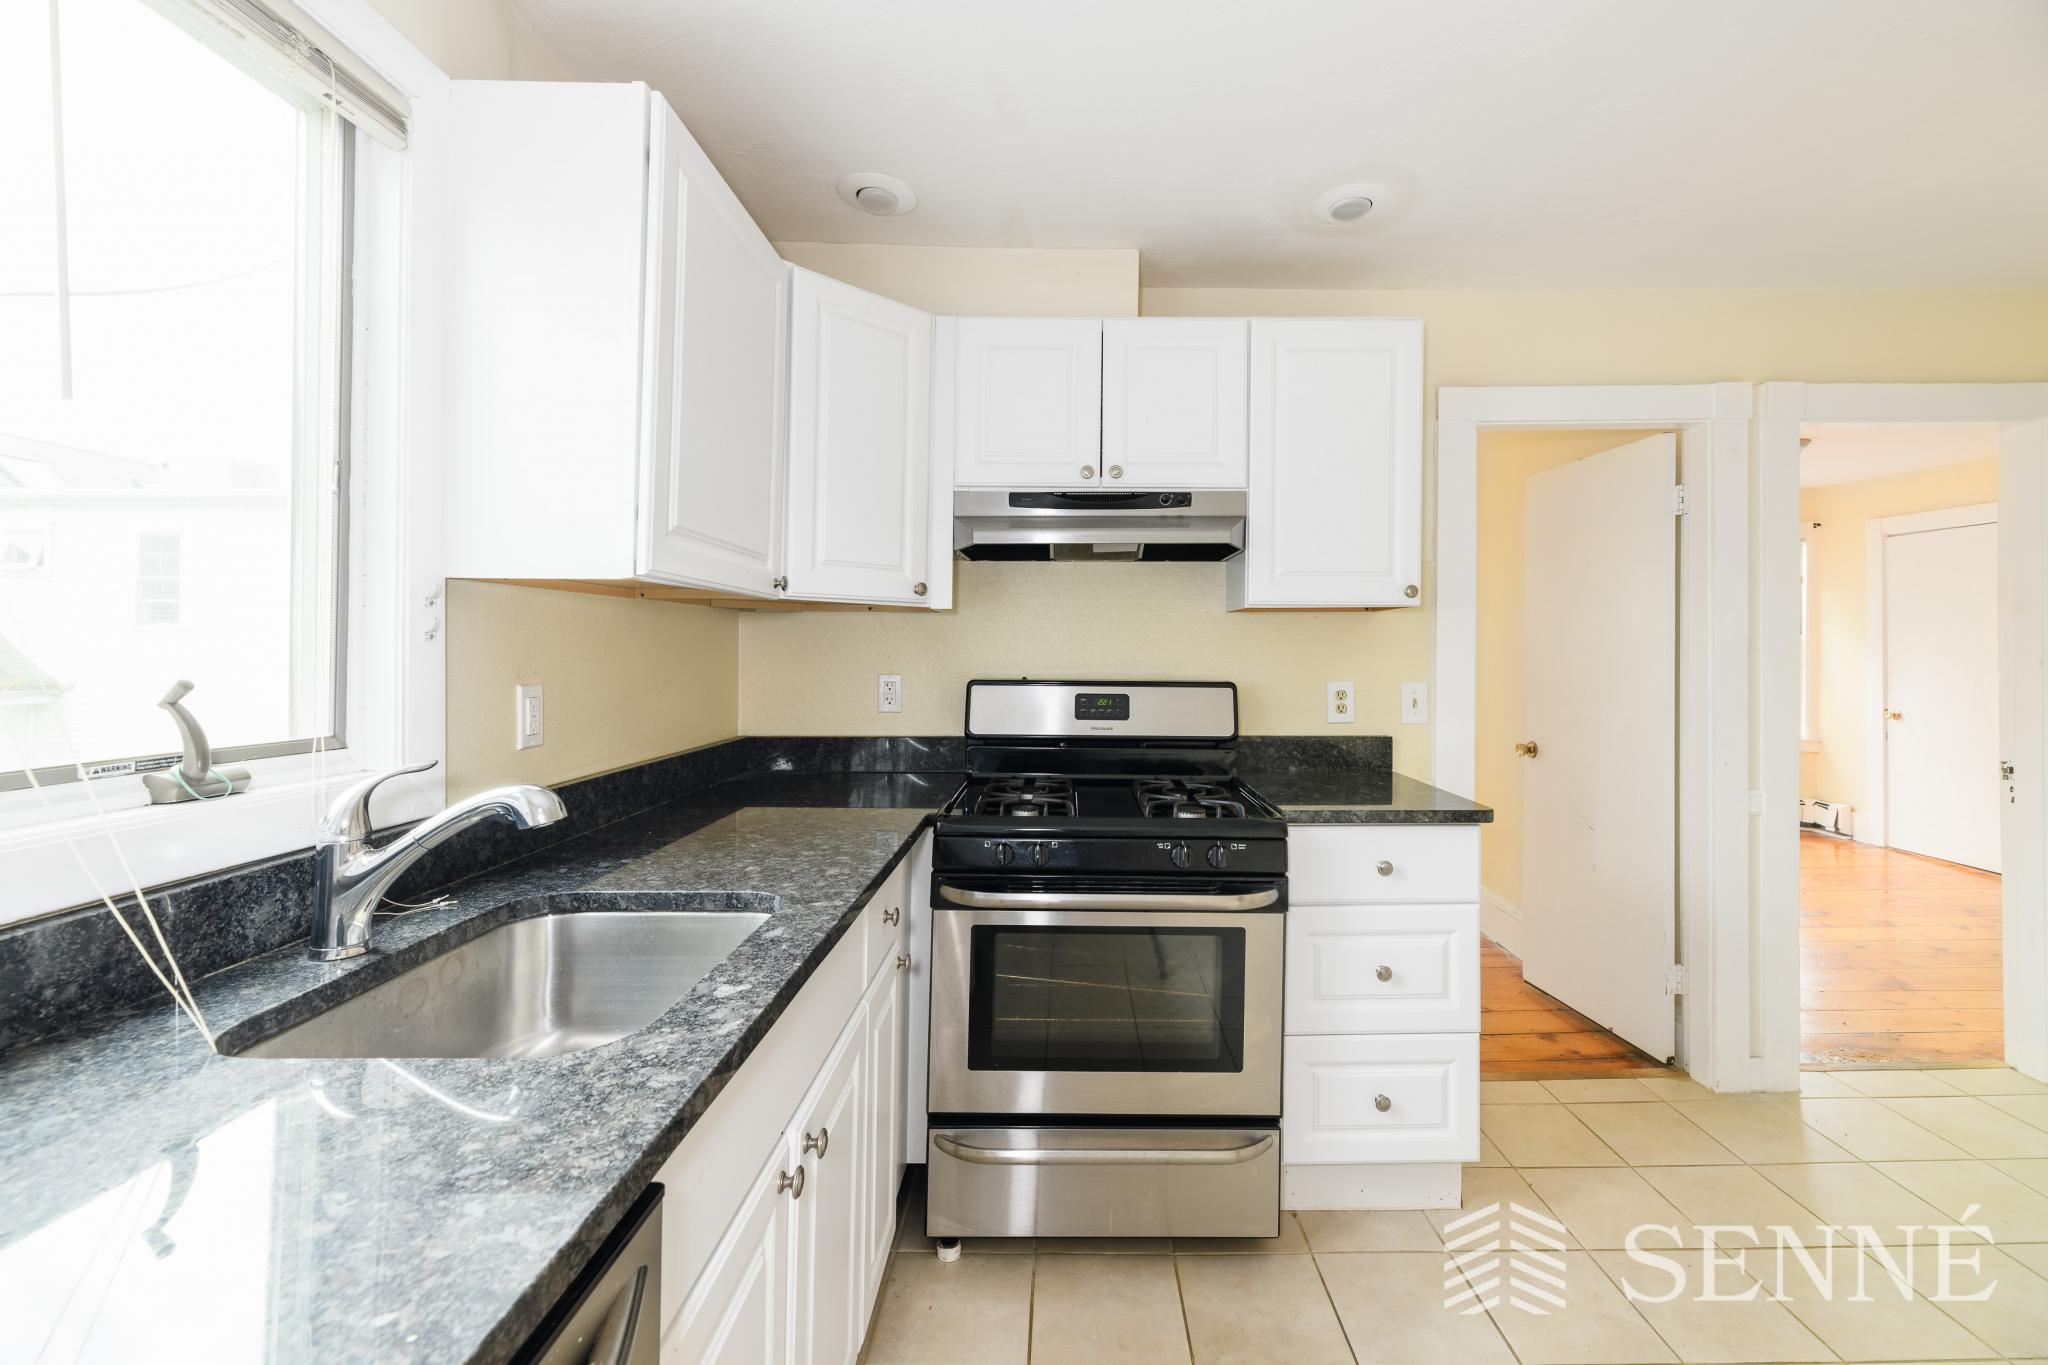 3 Beds, 1 Bath apartment in Somerville for $2,875